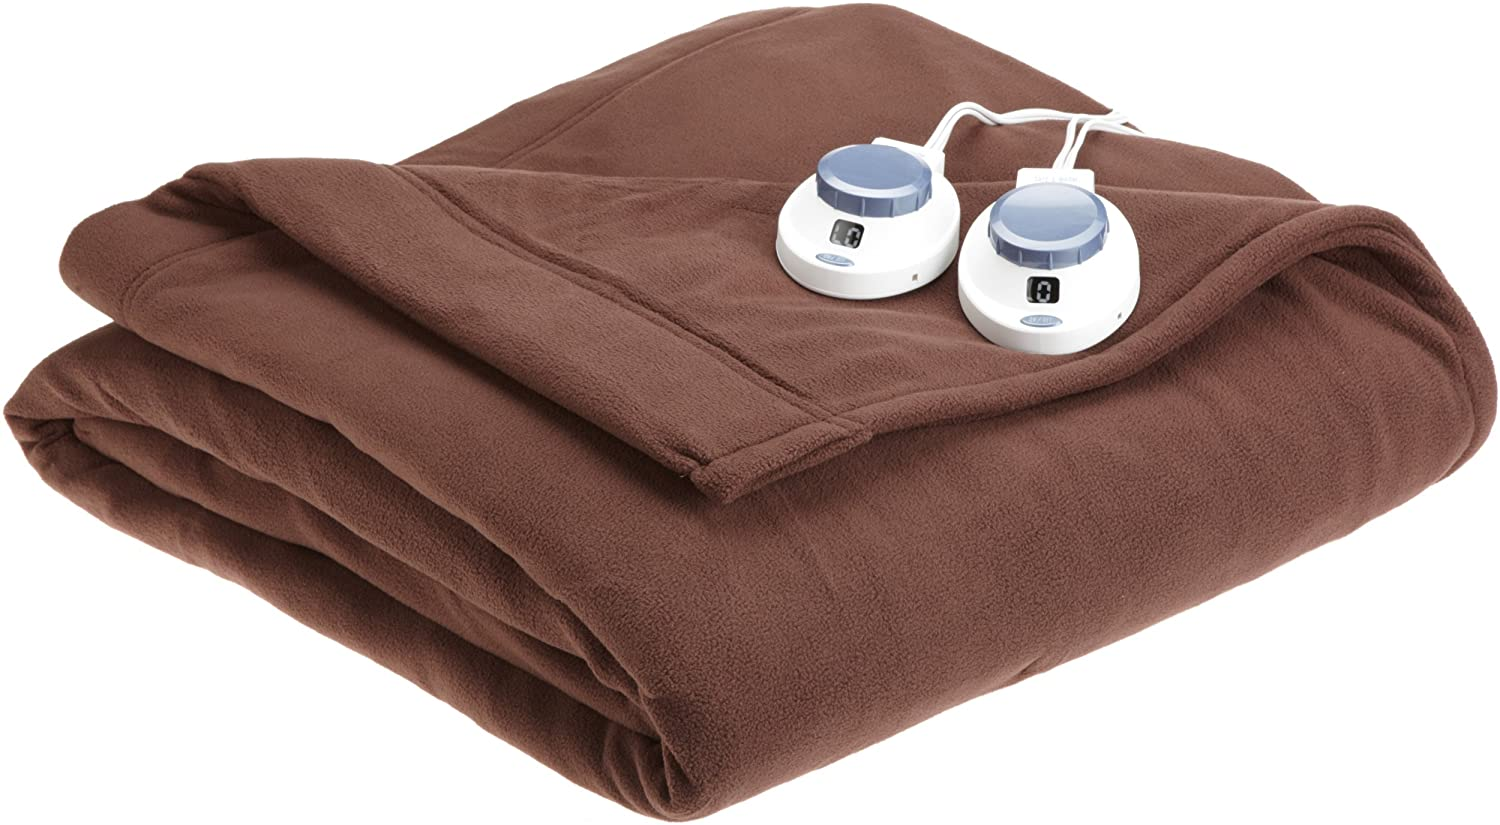 Amazon.com: Soft Heat Luxury Micro-Fleece Electric Heated Warming ...